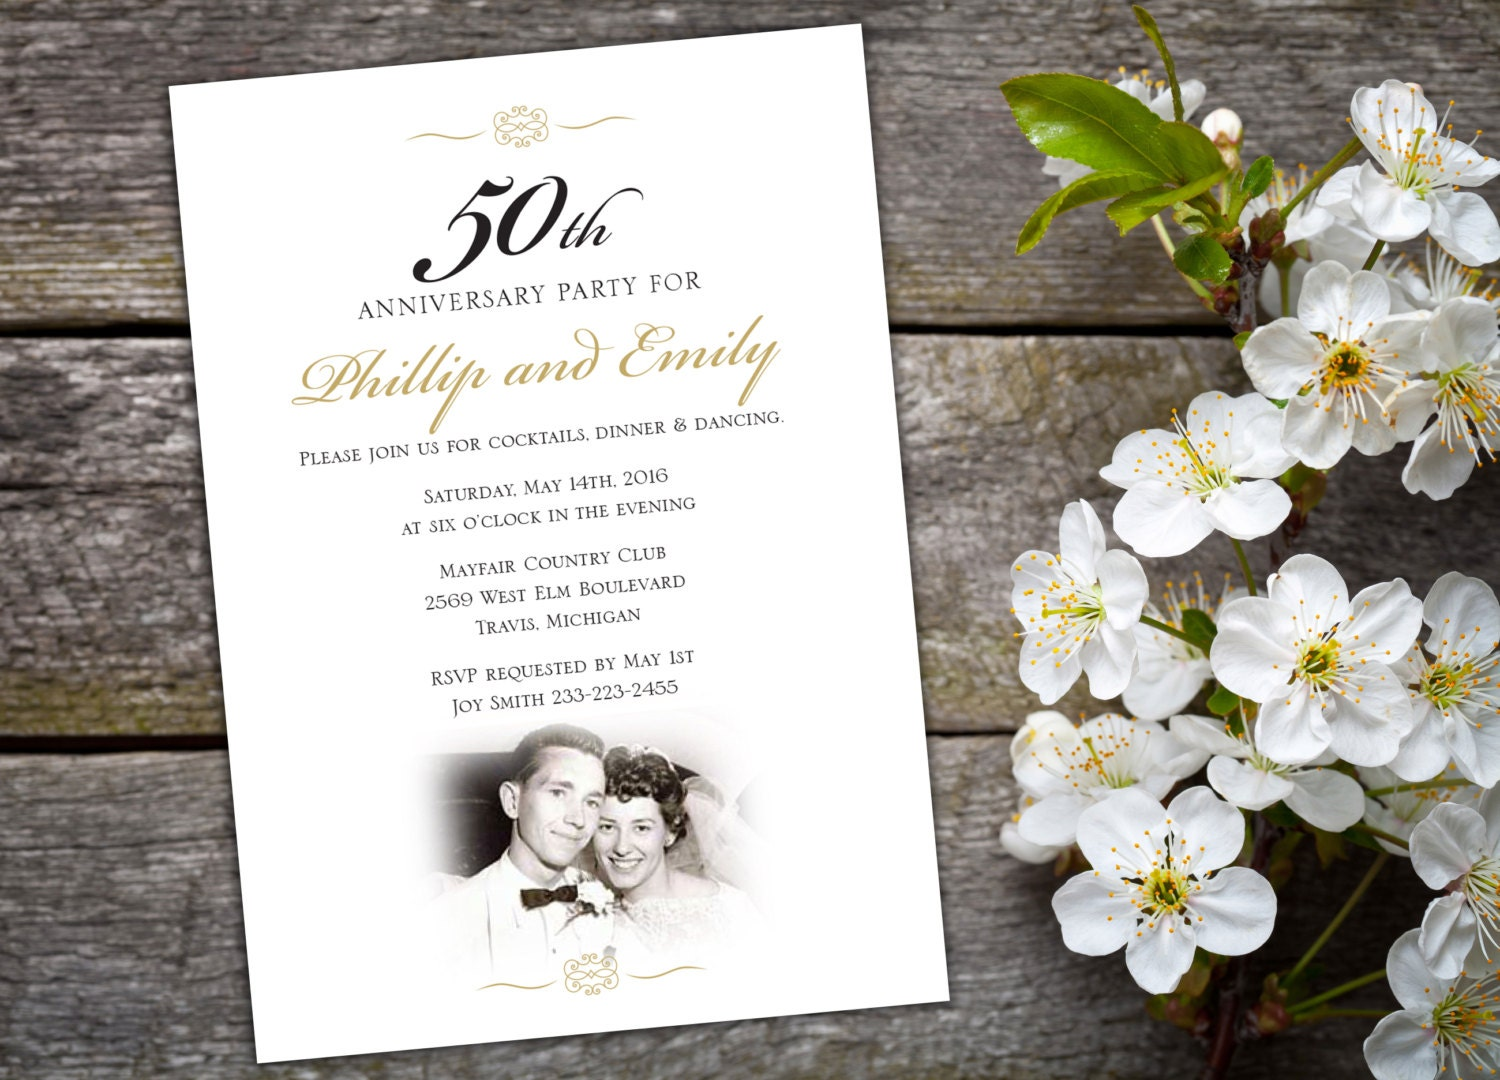 50th Wedding Invitation Templates: 50th Wedding Anniversary Invitation Elegant Script Black And